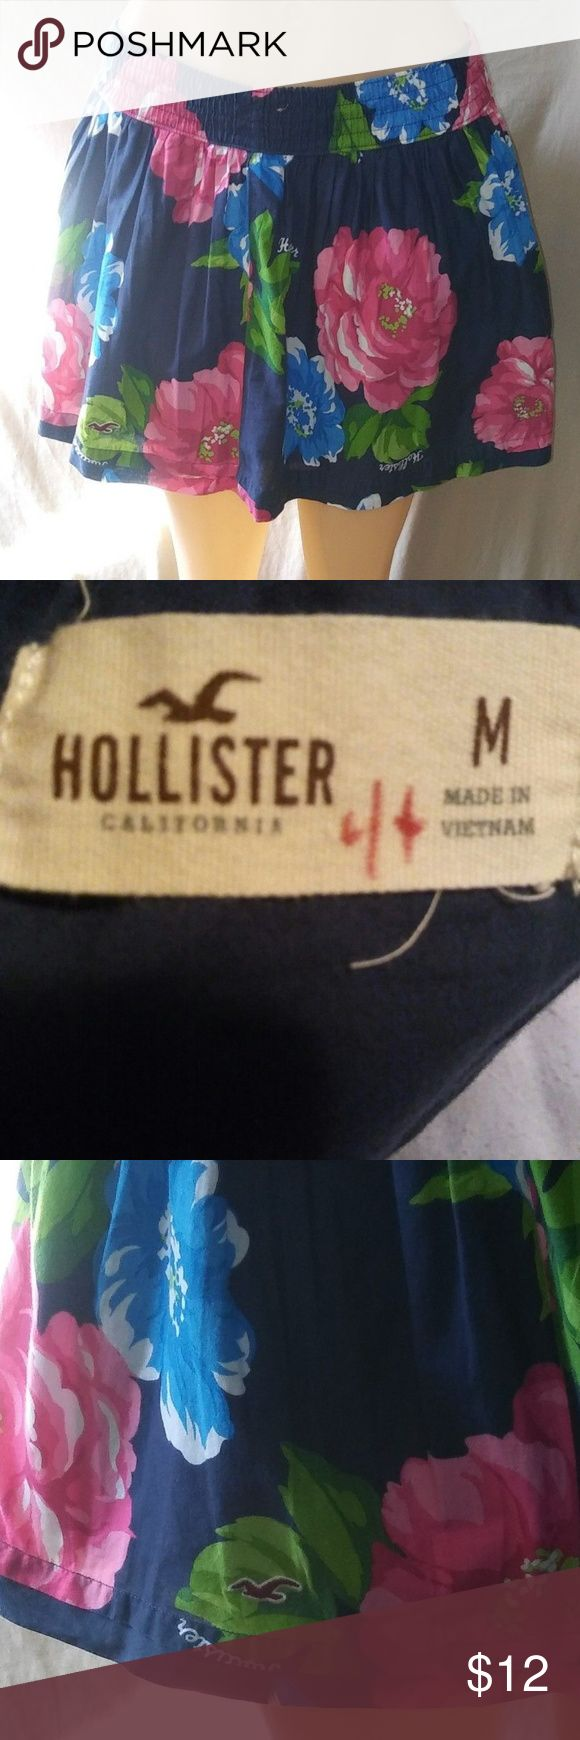 """Hollister California Size Medium Floral Skirt This is a pre-owned Hollister California short skirt. Has some fabric fade from washing. There is a number on the skirt tag. Waist un-stretched measures 26"""" Length of skirt from waist to hem is 14.5""""  Don't hesitate to send offers, will accept any reasonable offer. Hollister Skirts Mini"""